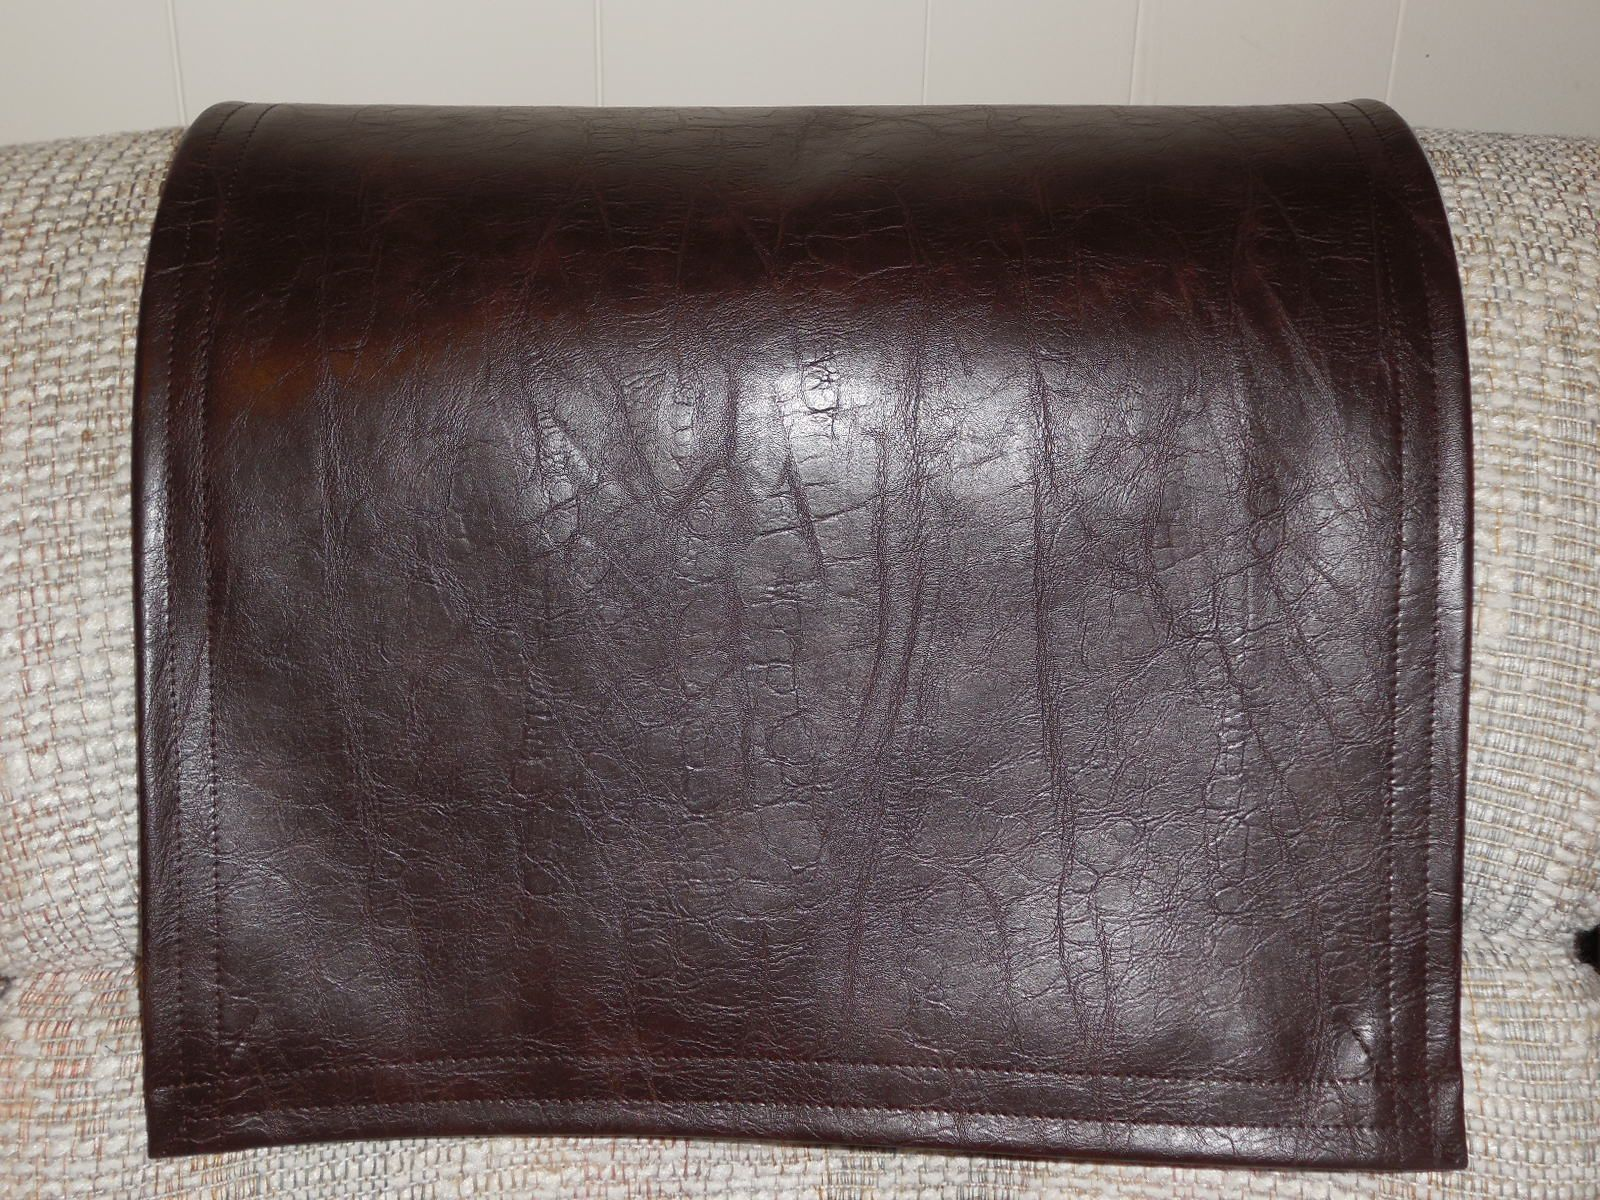 Will Recliner Headrest Cover In Chocolate Brown Fit Your